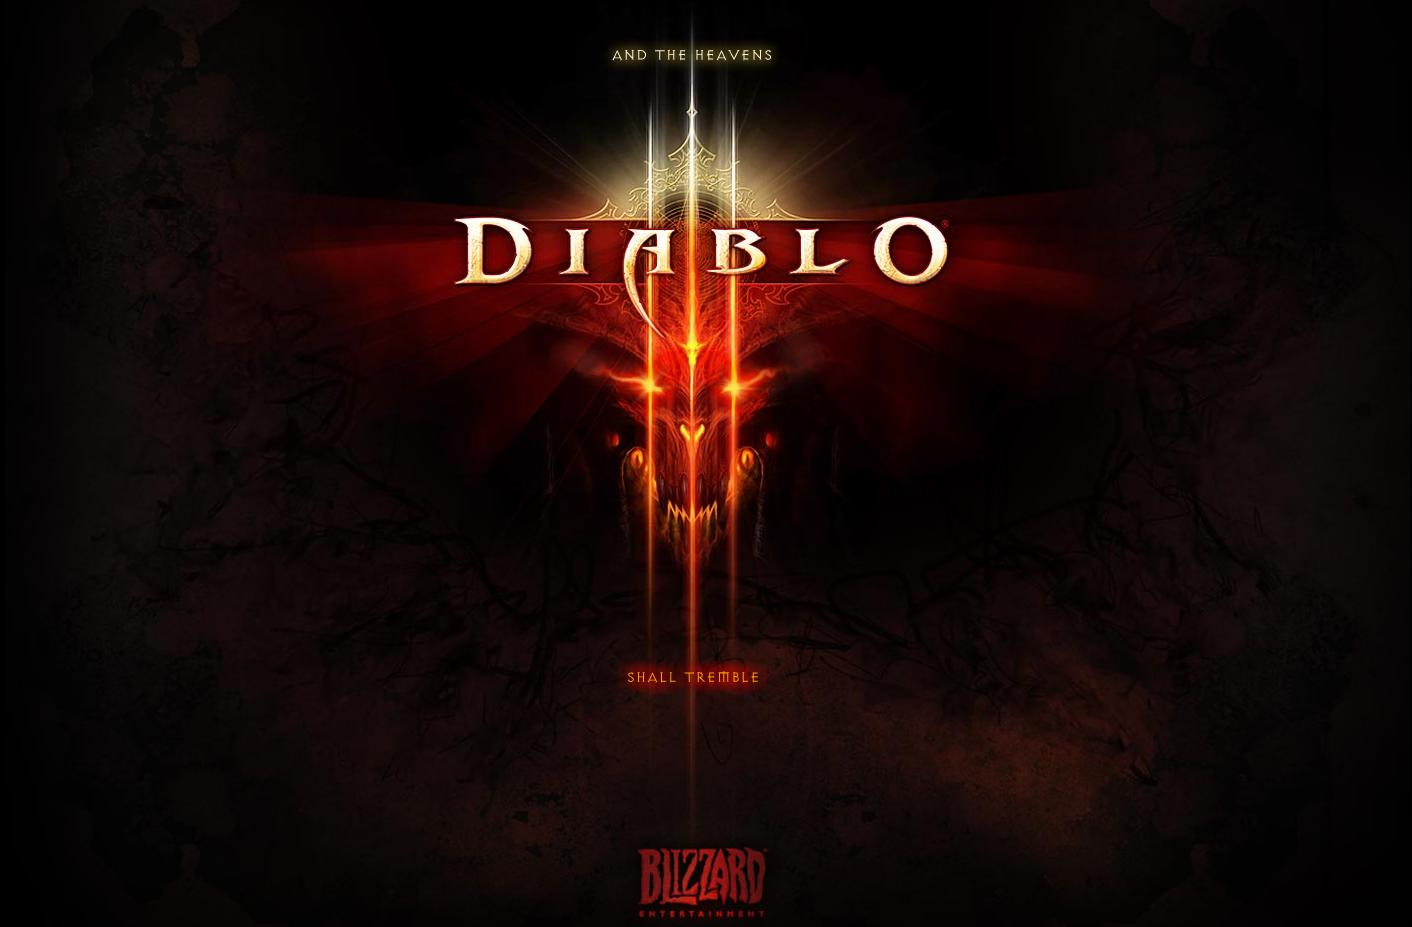 Diablo 3 announced!